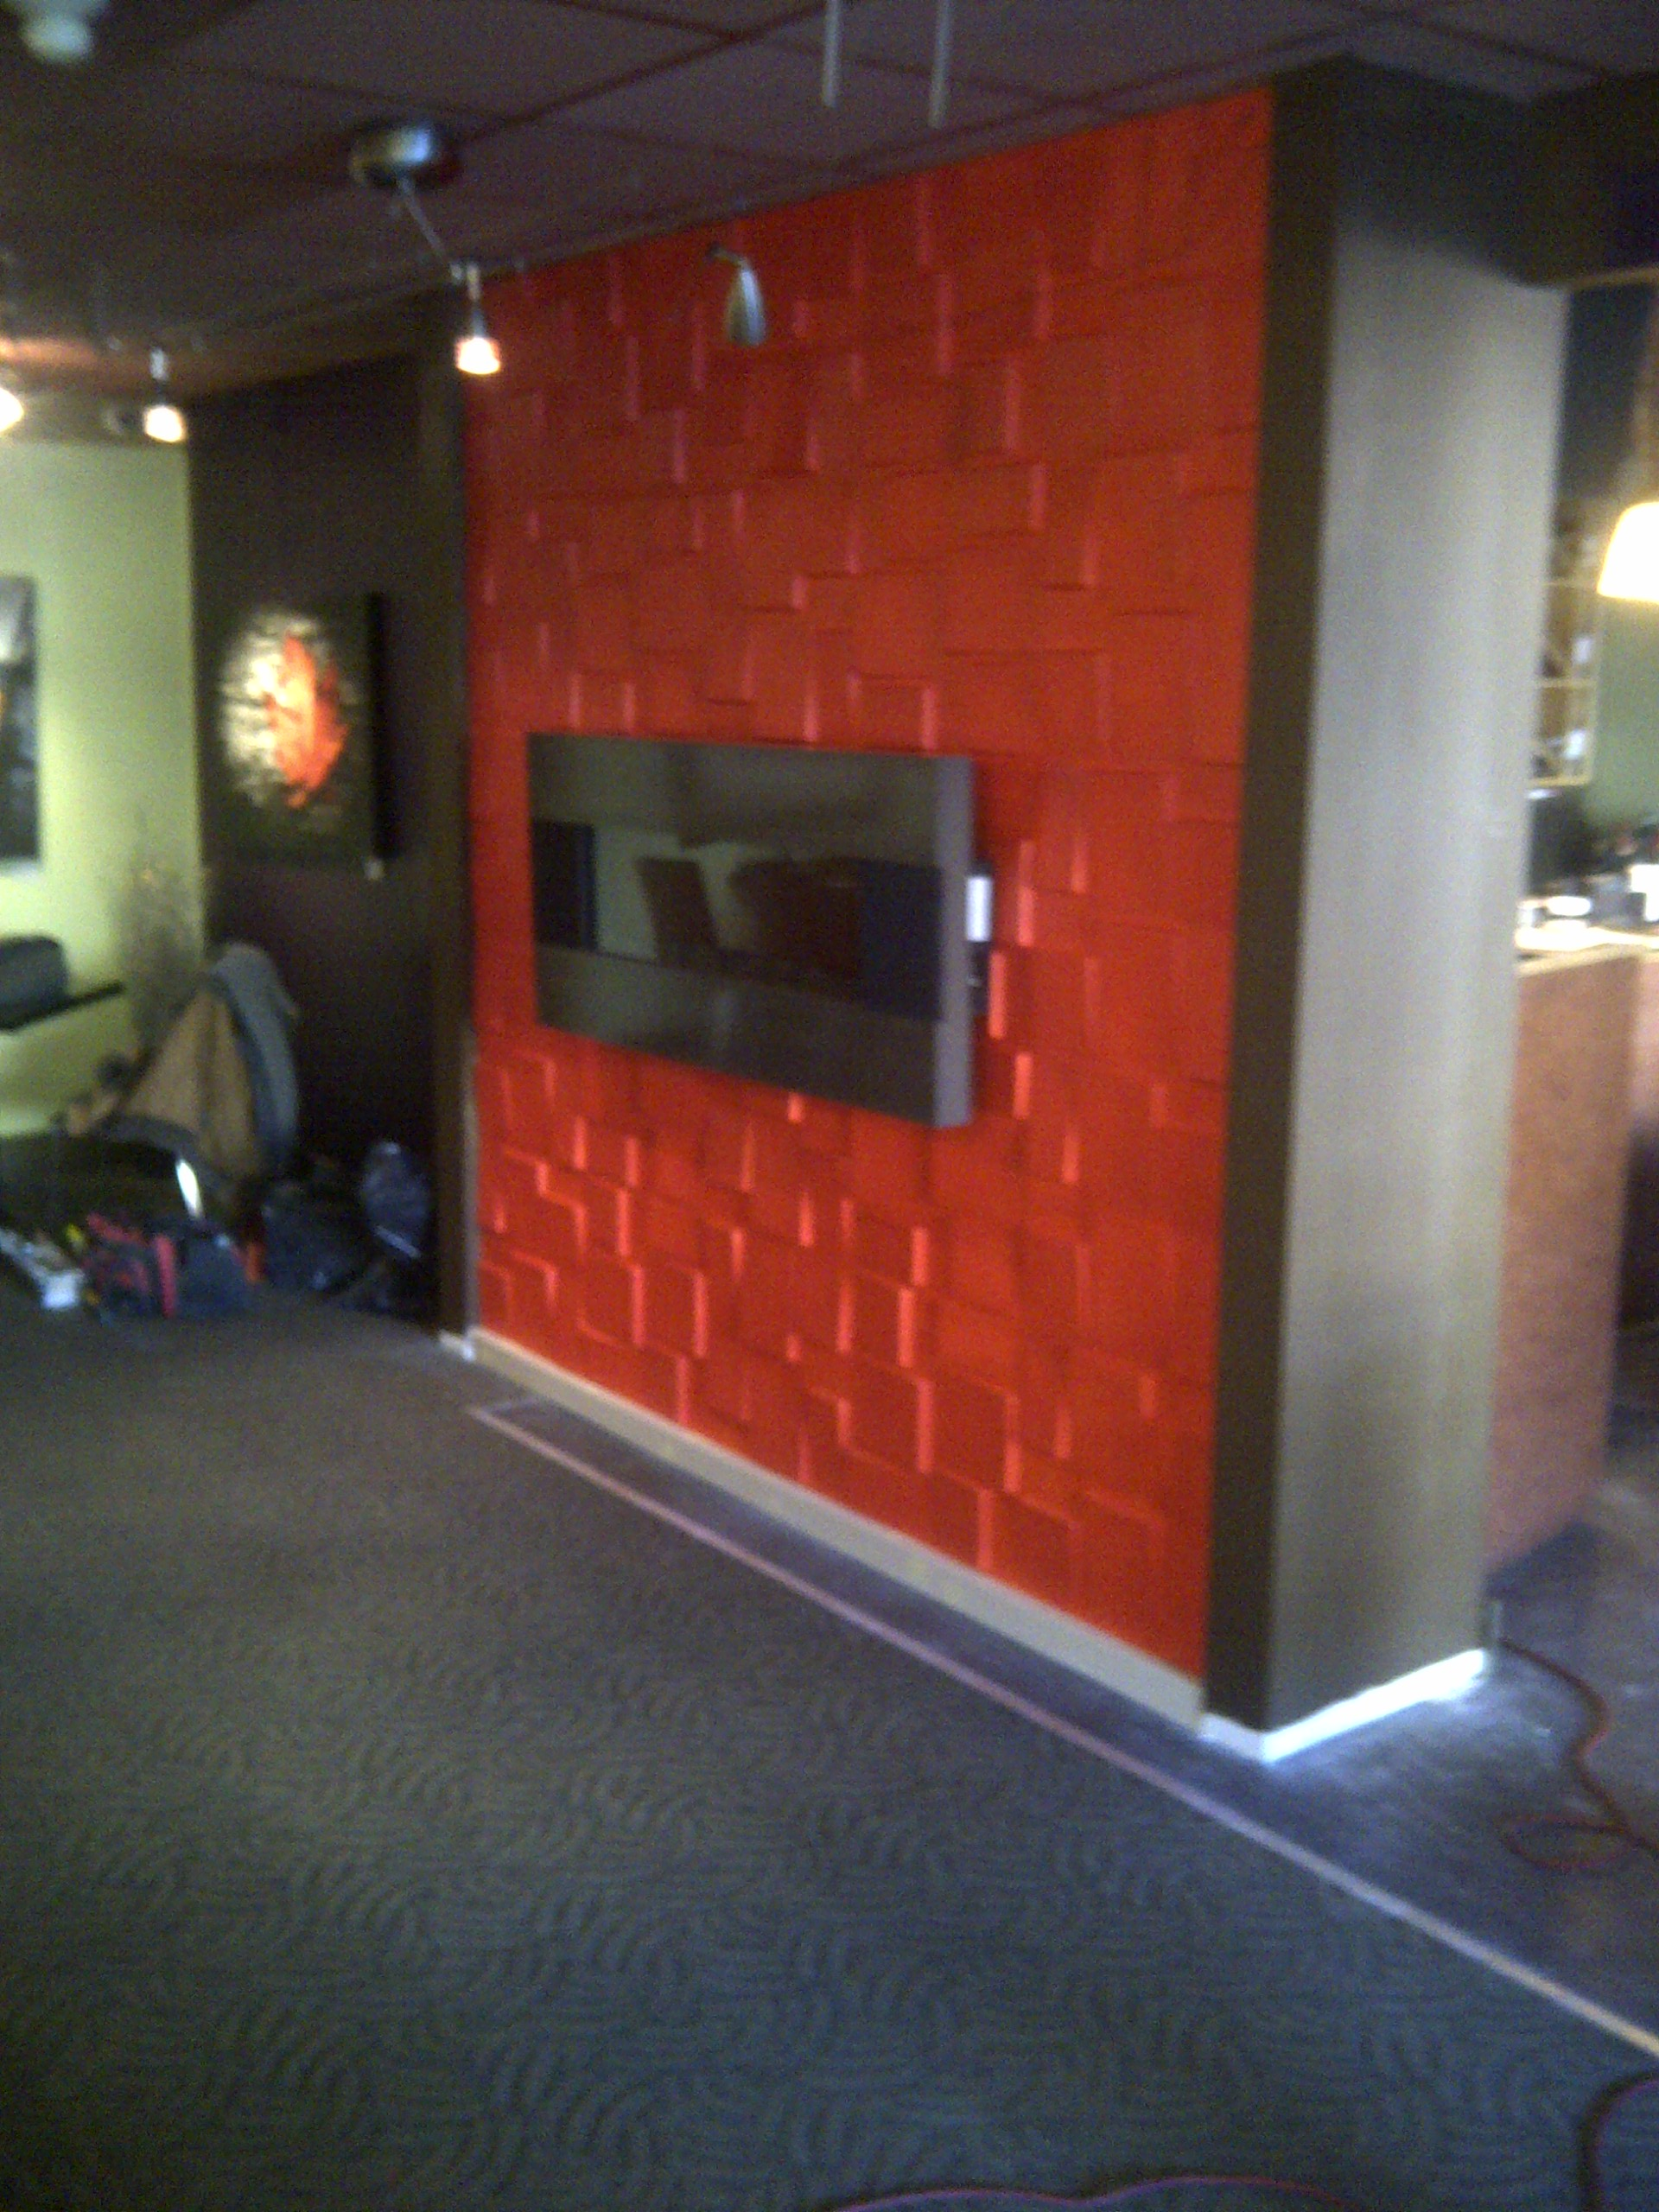 Textured feature wall with fireplace